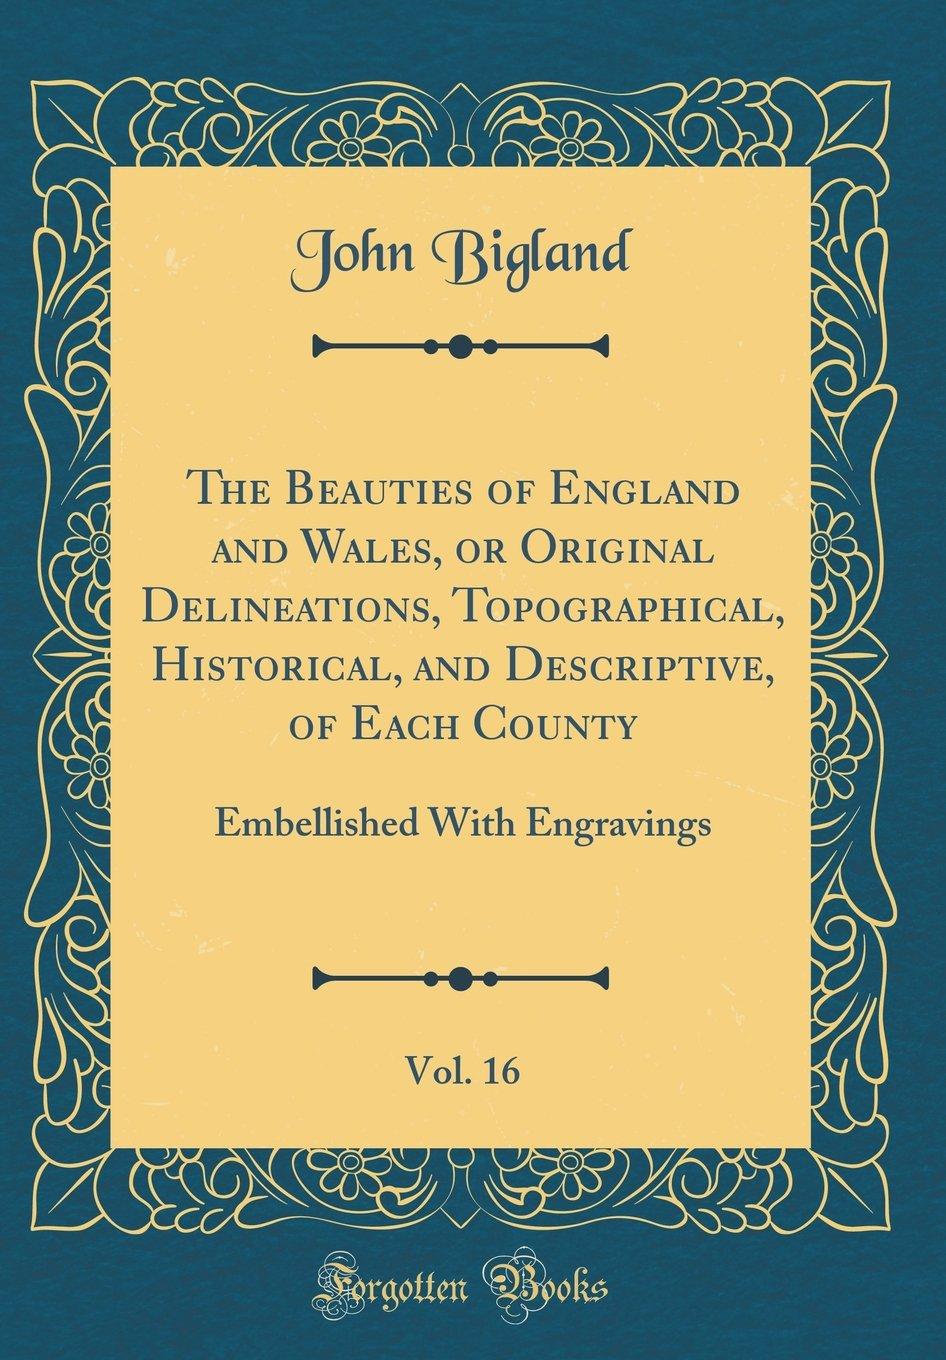 Download The Beauties of England and Wales, or Original Delineations, Topographical, Historical, and Descriptive, of Each County, Vol. 16: Embellished With Engravings (Classic Reprint) pdf epub